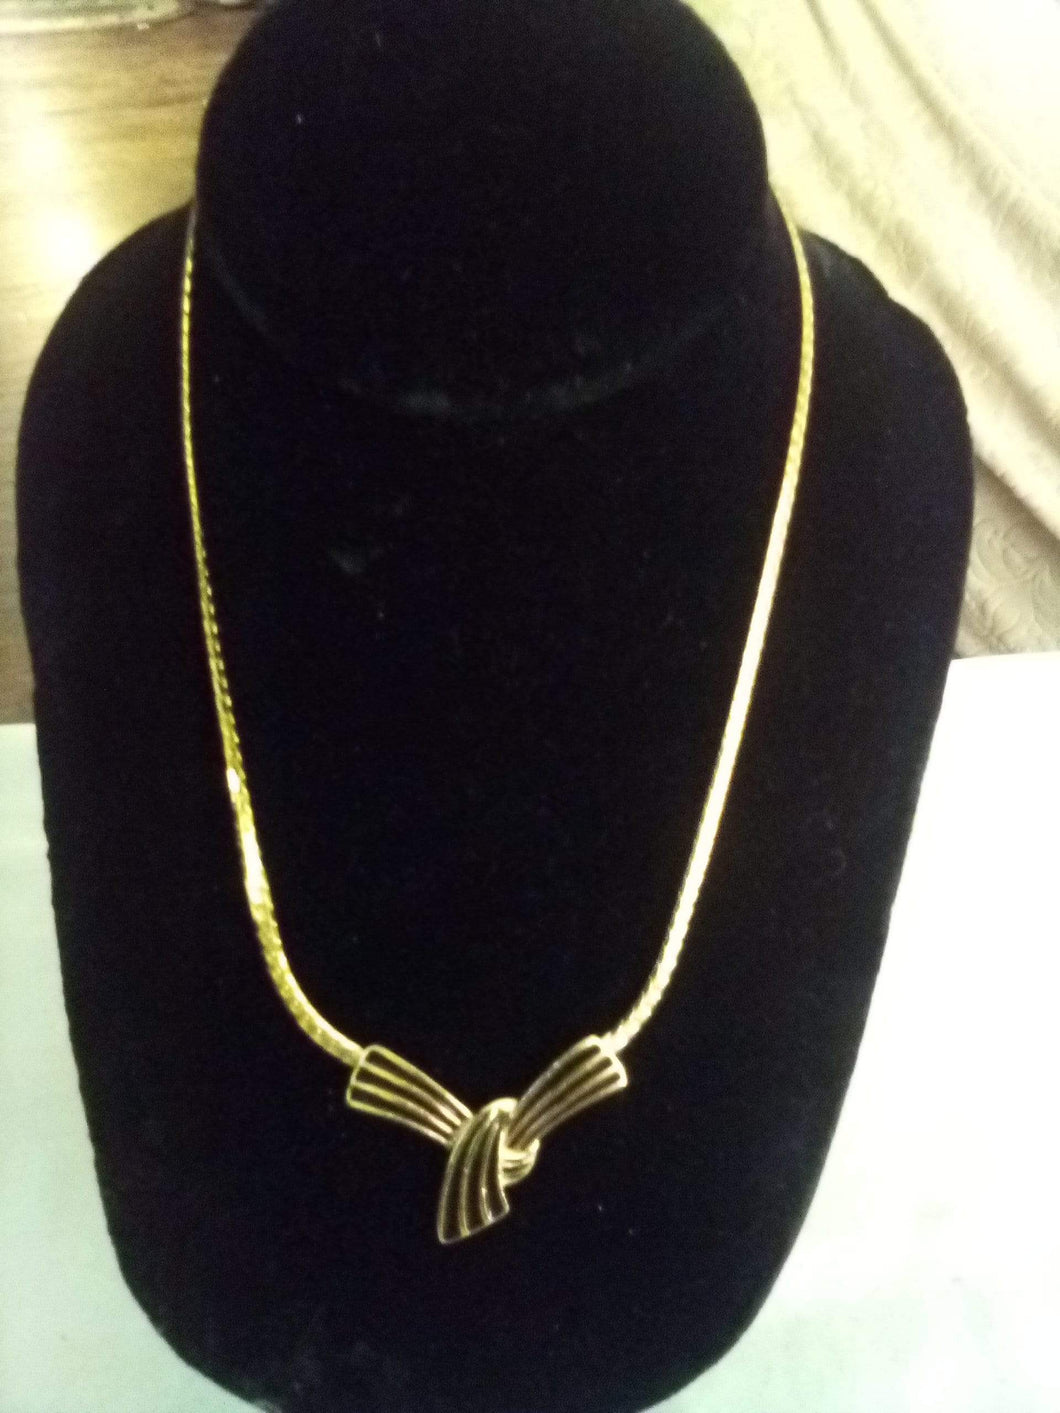 Monet marked vintage gold tone necklace - B&P'sringsnthings